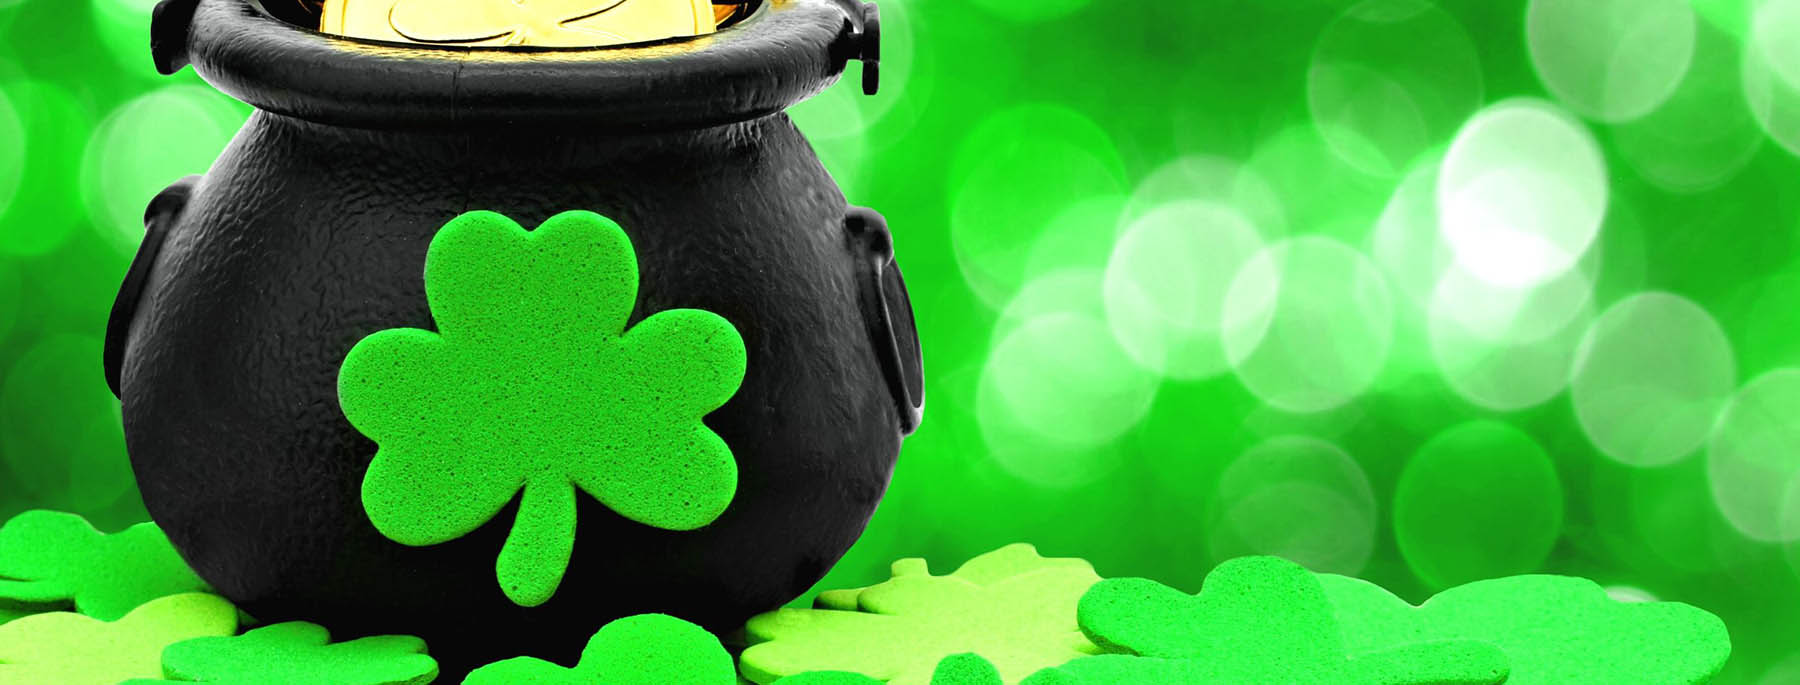 St. Patrick's Day this weekend at Cashmio